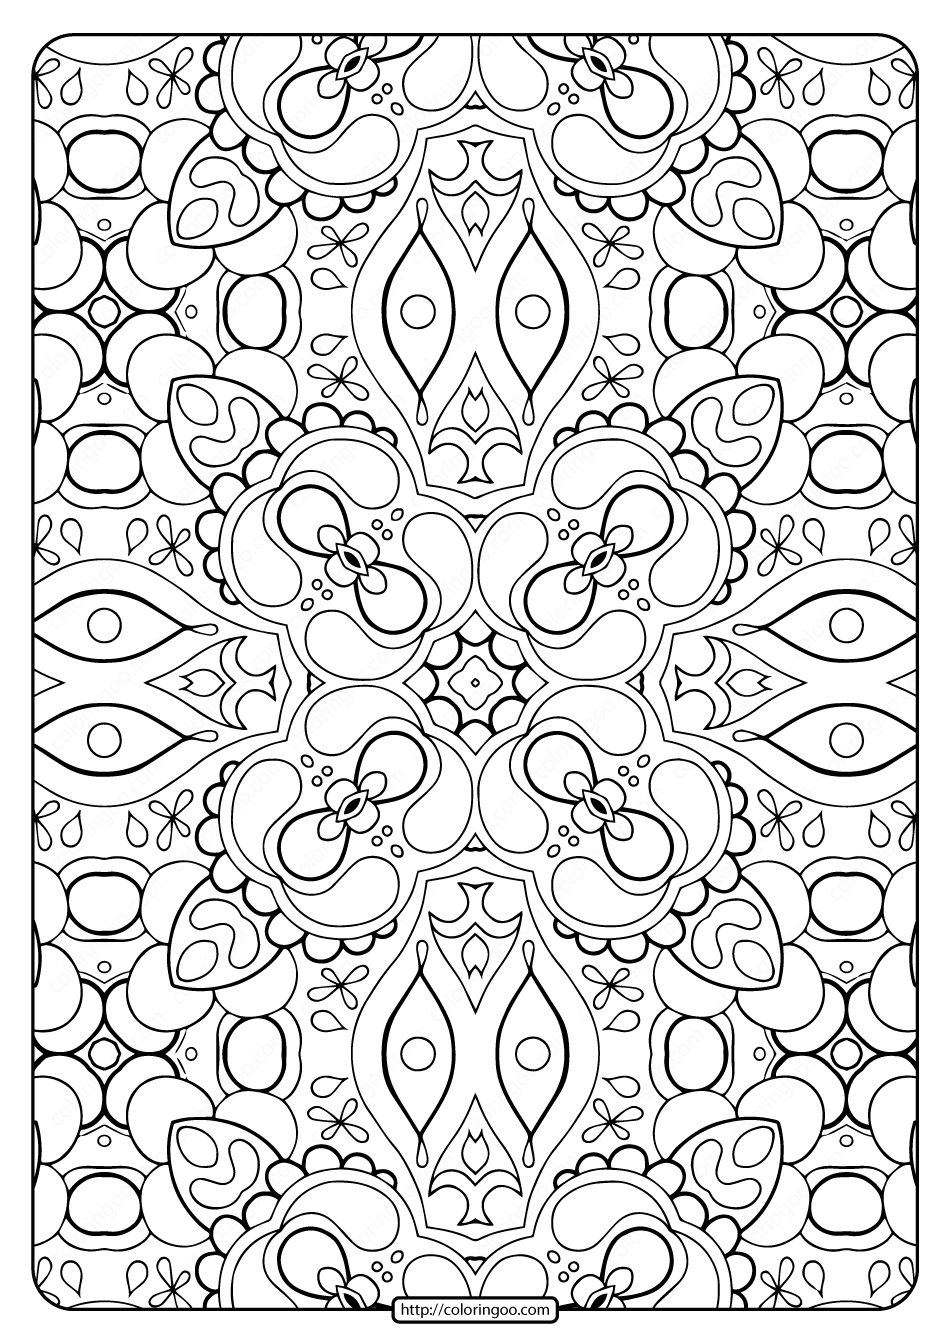 patterns for colouring for adults adult coloring pages patterns coloring home for for colouring patterns adults